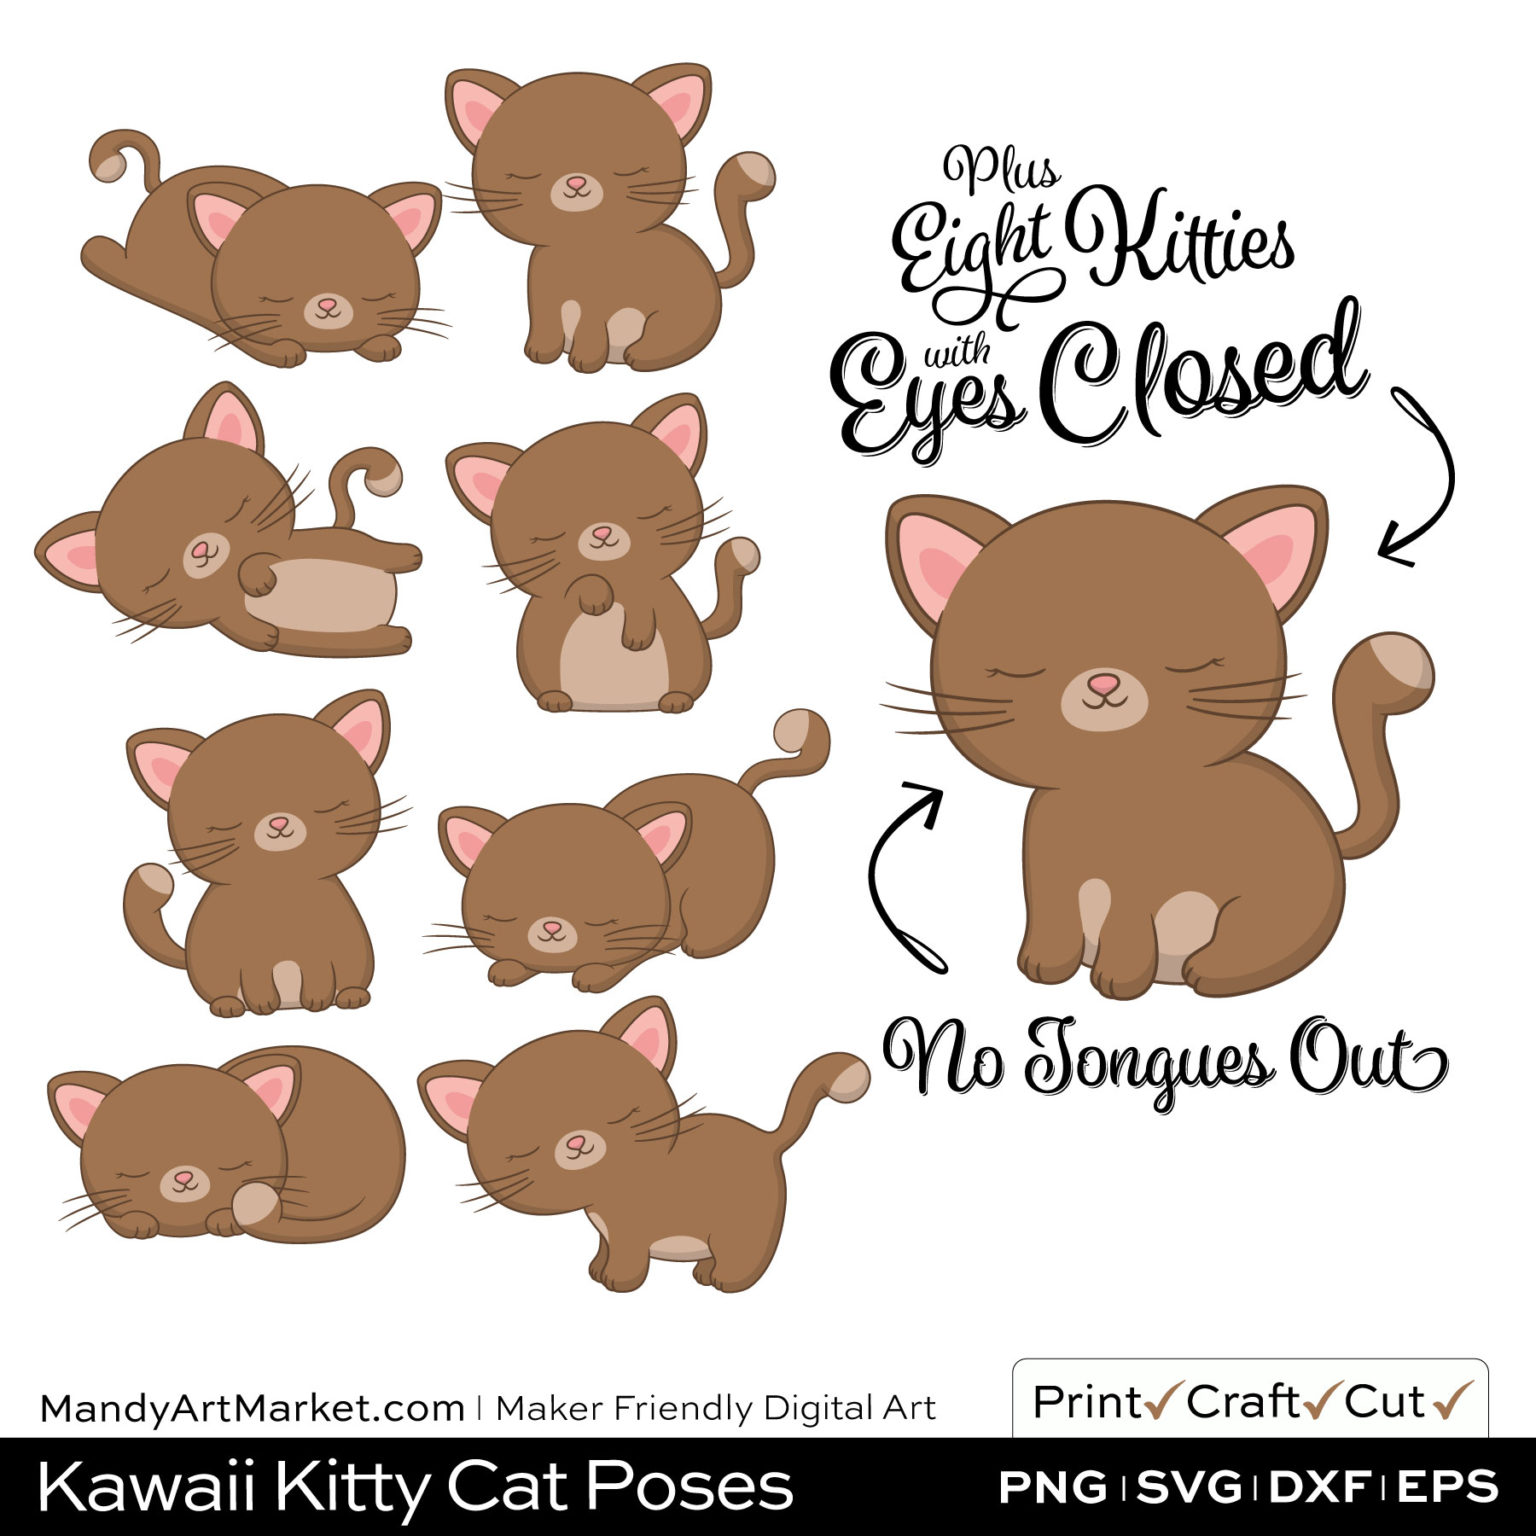 Coffee Brown Kawaii Kitty Cat Poses Clipart PNGs Included in Download